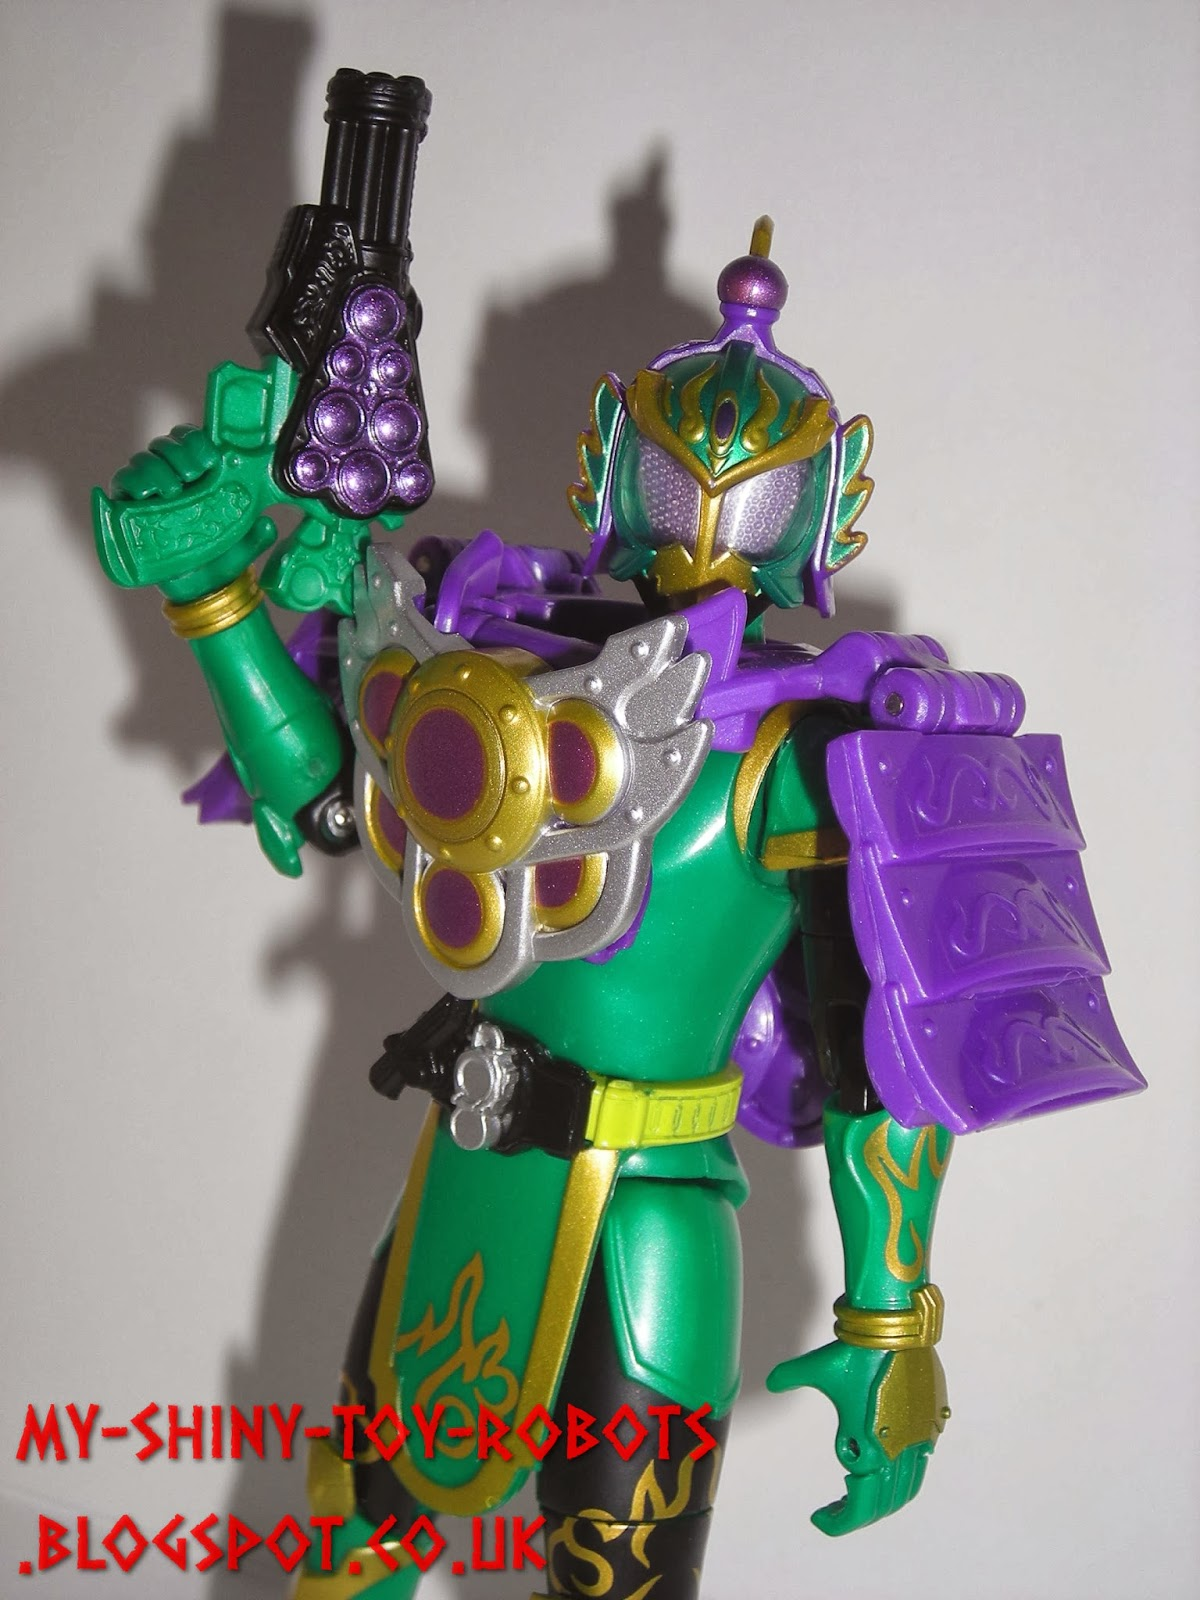 Ryugen Budou Arms ready for action